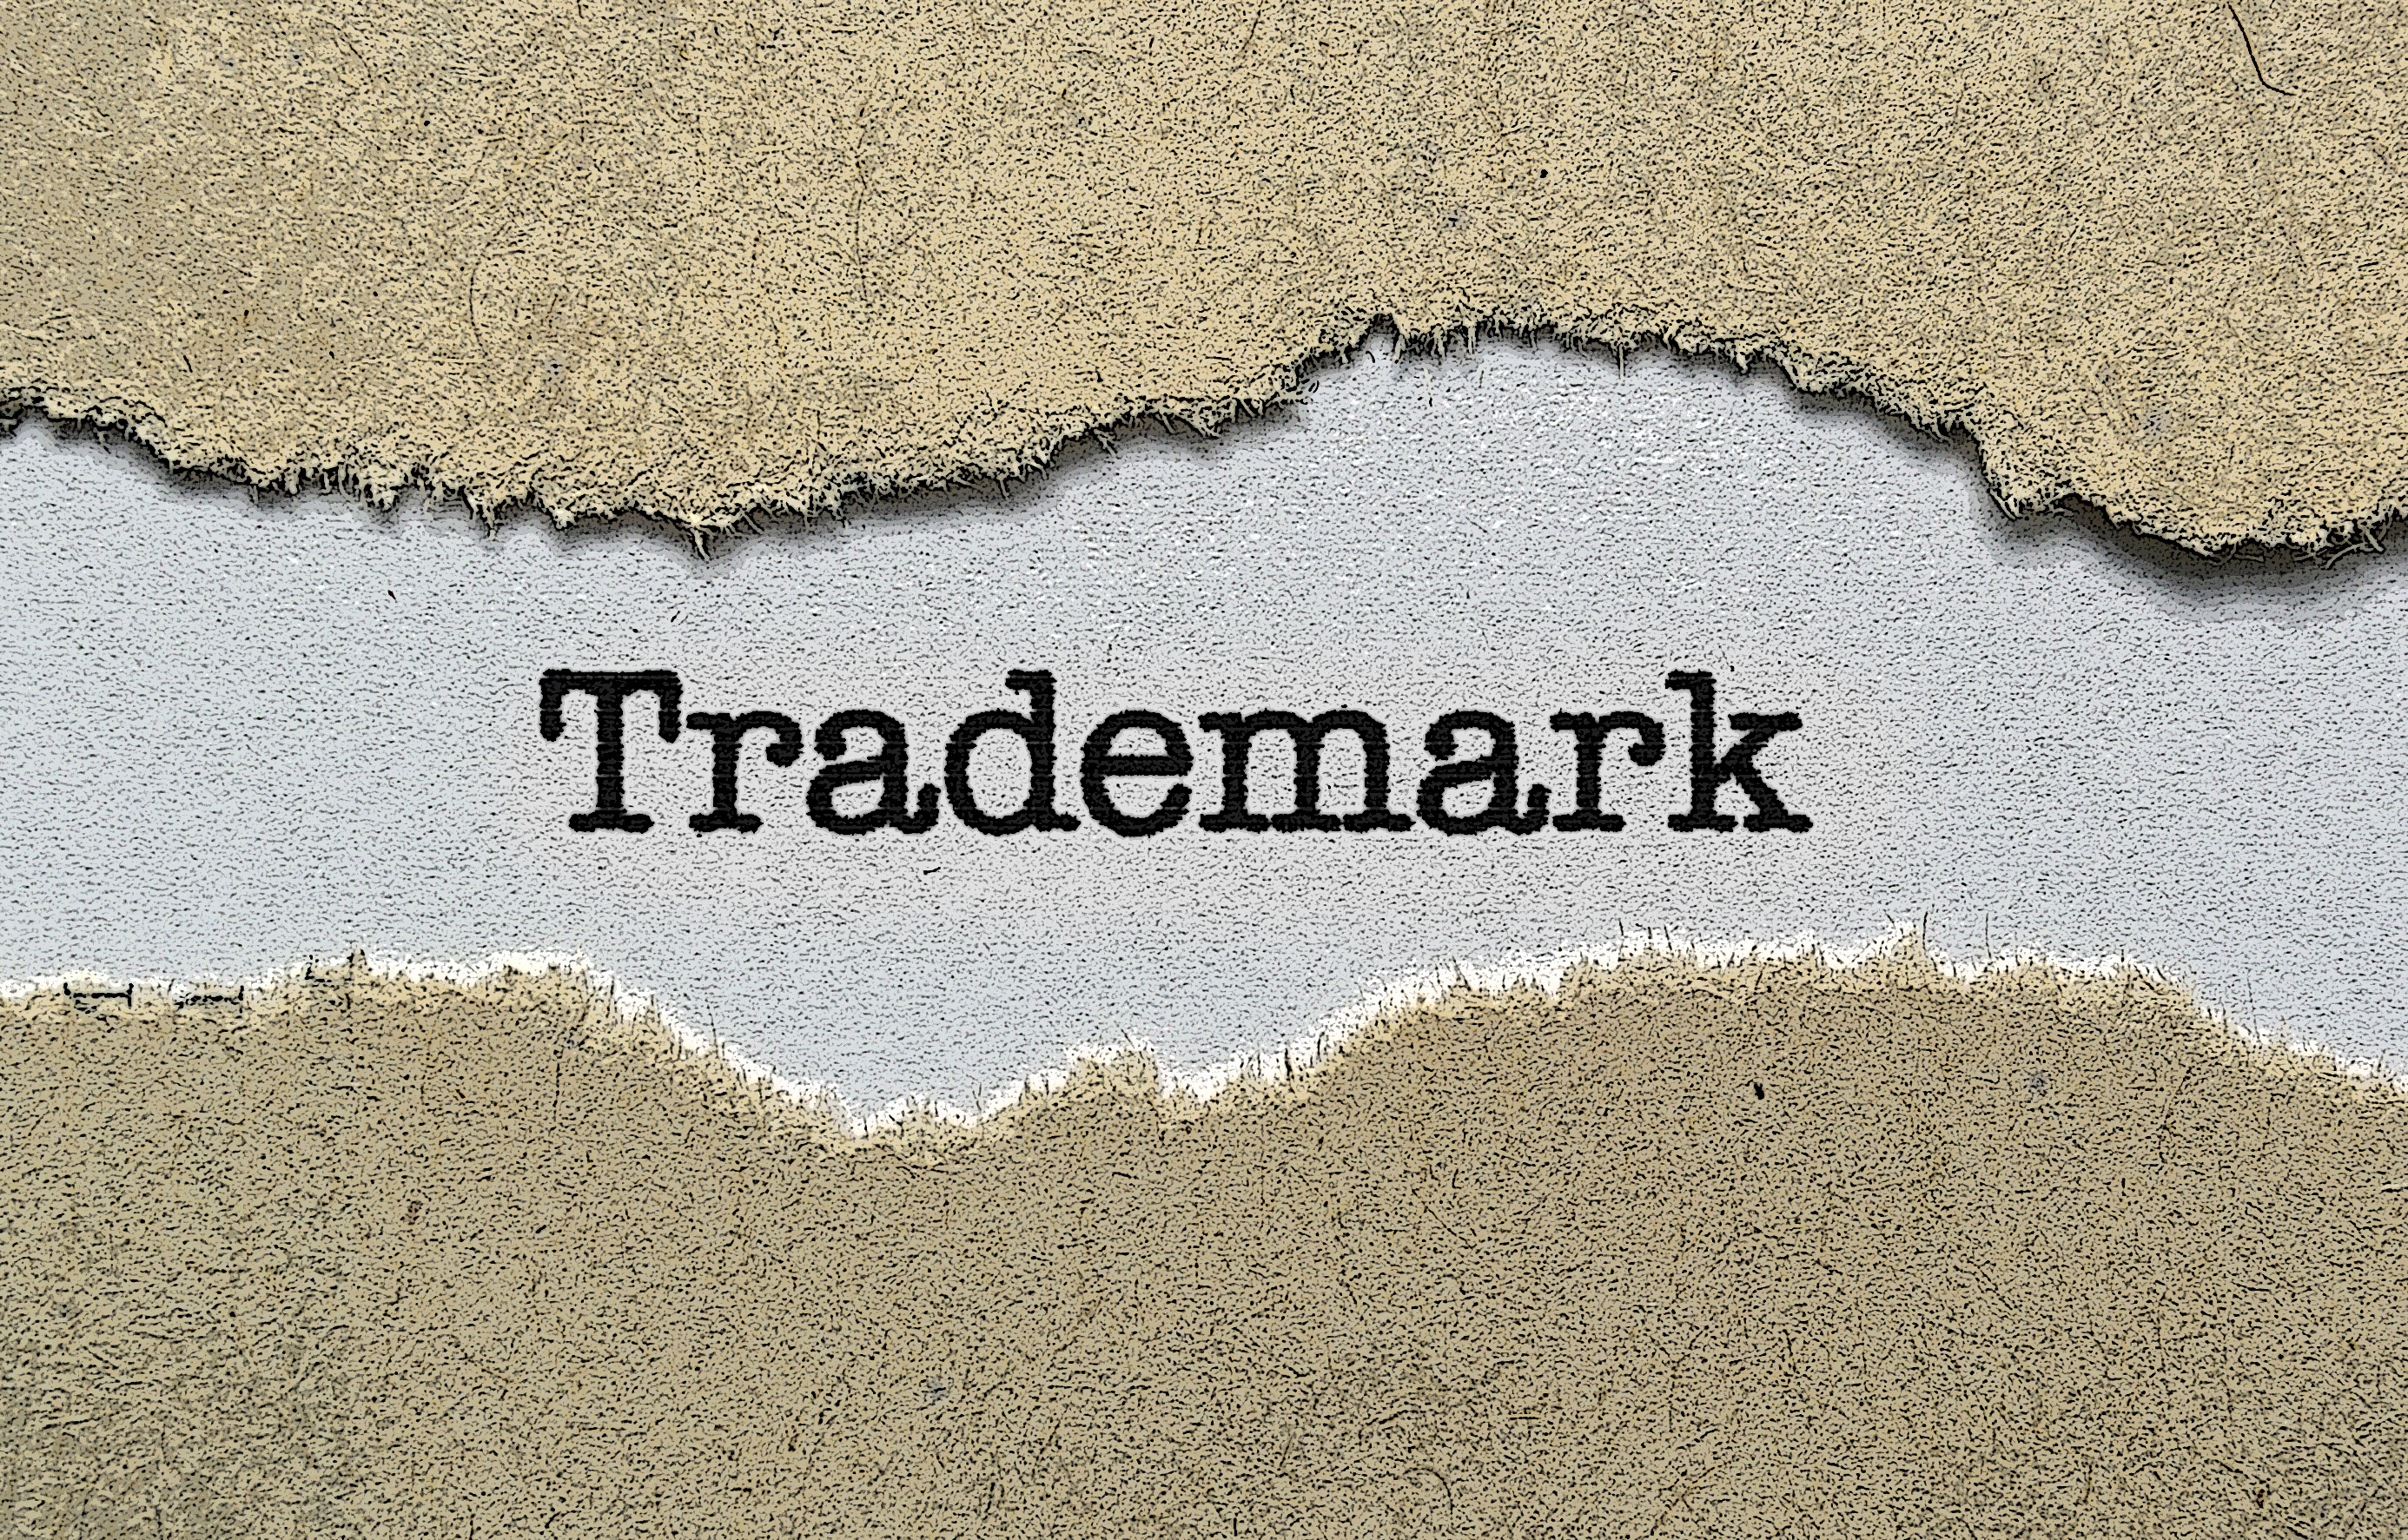 Working Your Way Up From a Japanese Trademark Search